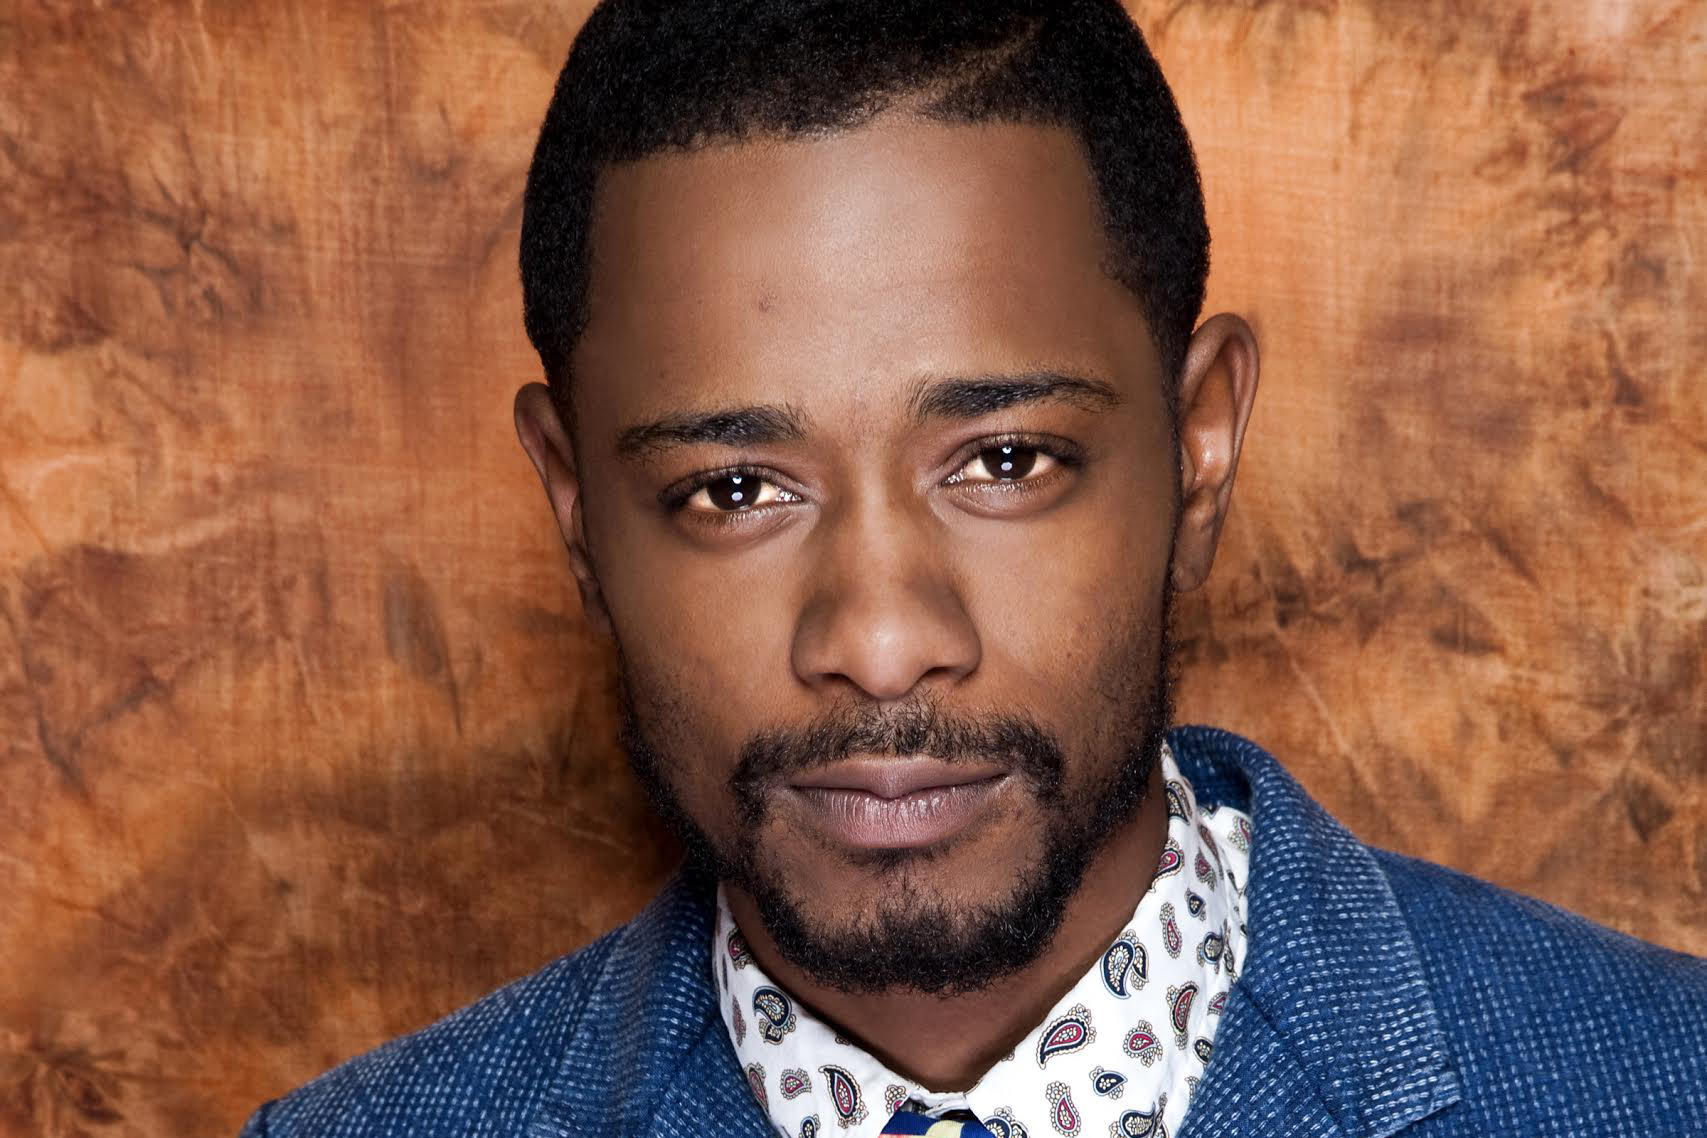 keith_stanfield-2015-gilles_toucas.jpg